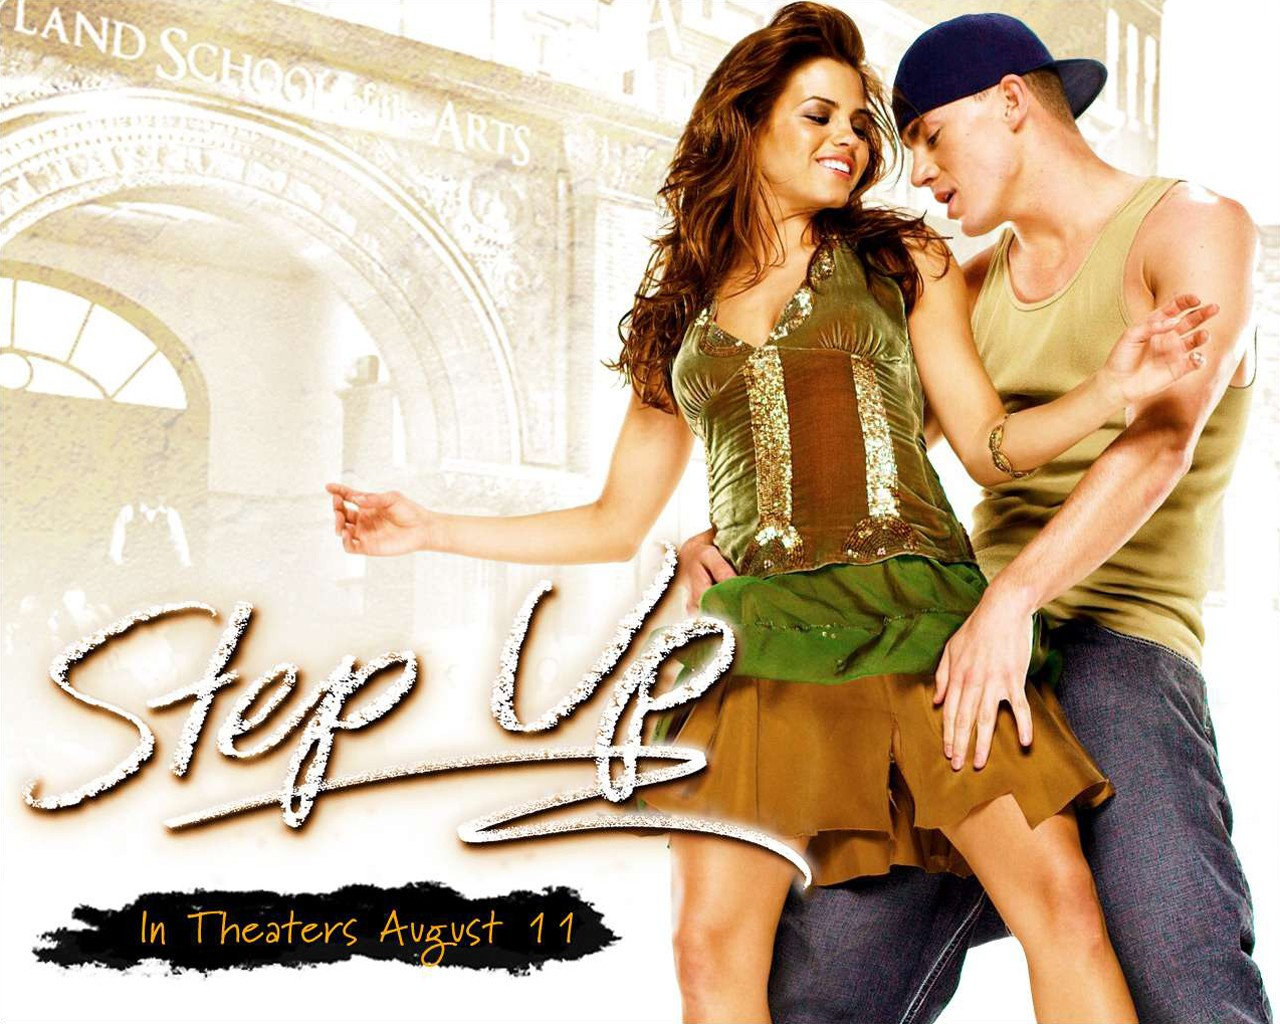 Wallpaper di Channing Tatum (Tyler) e Jenna Dewan (Nora) per il film Step Up